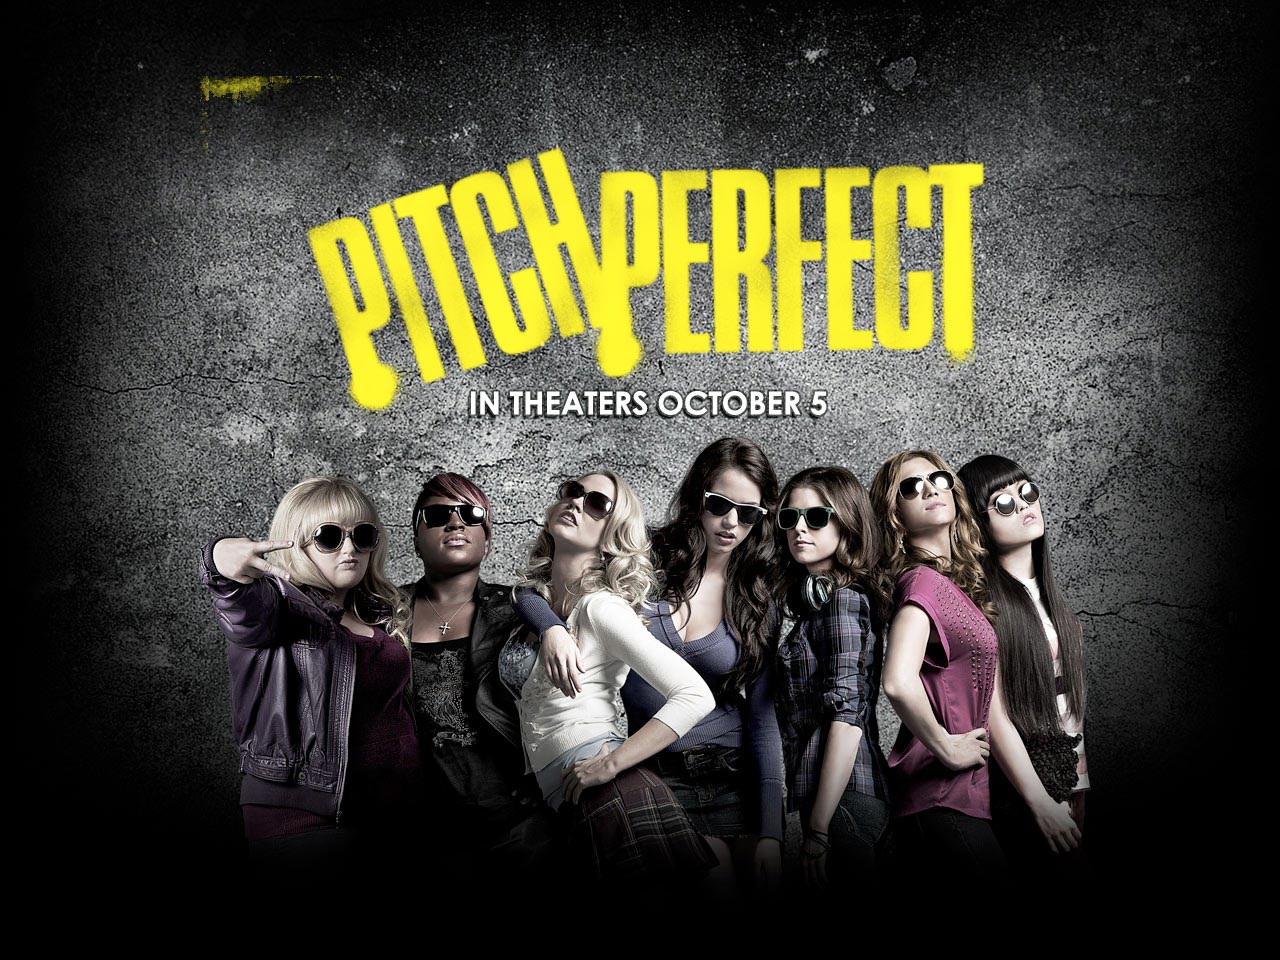 Pitch Perfect 2012 movie